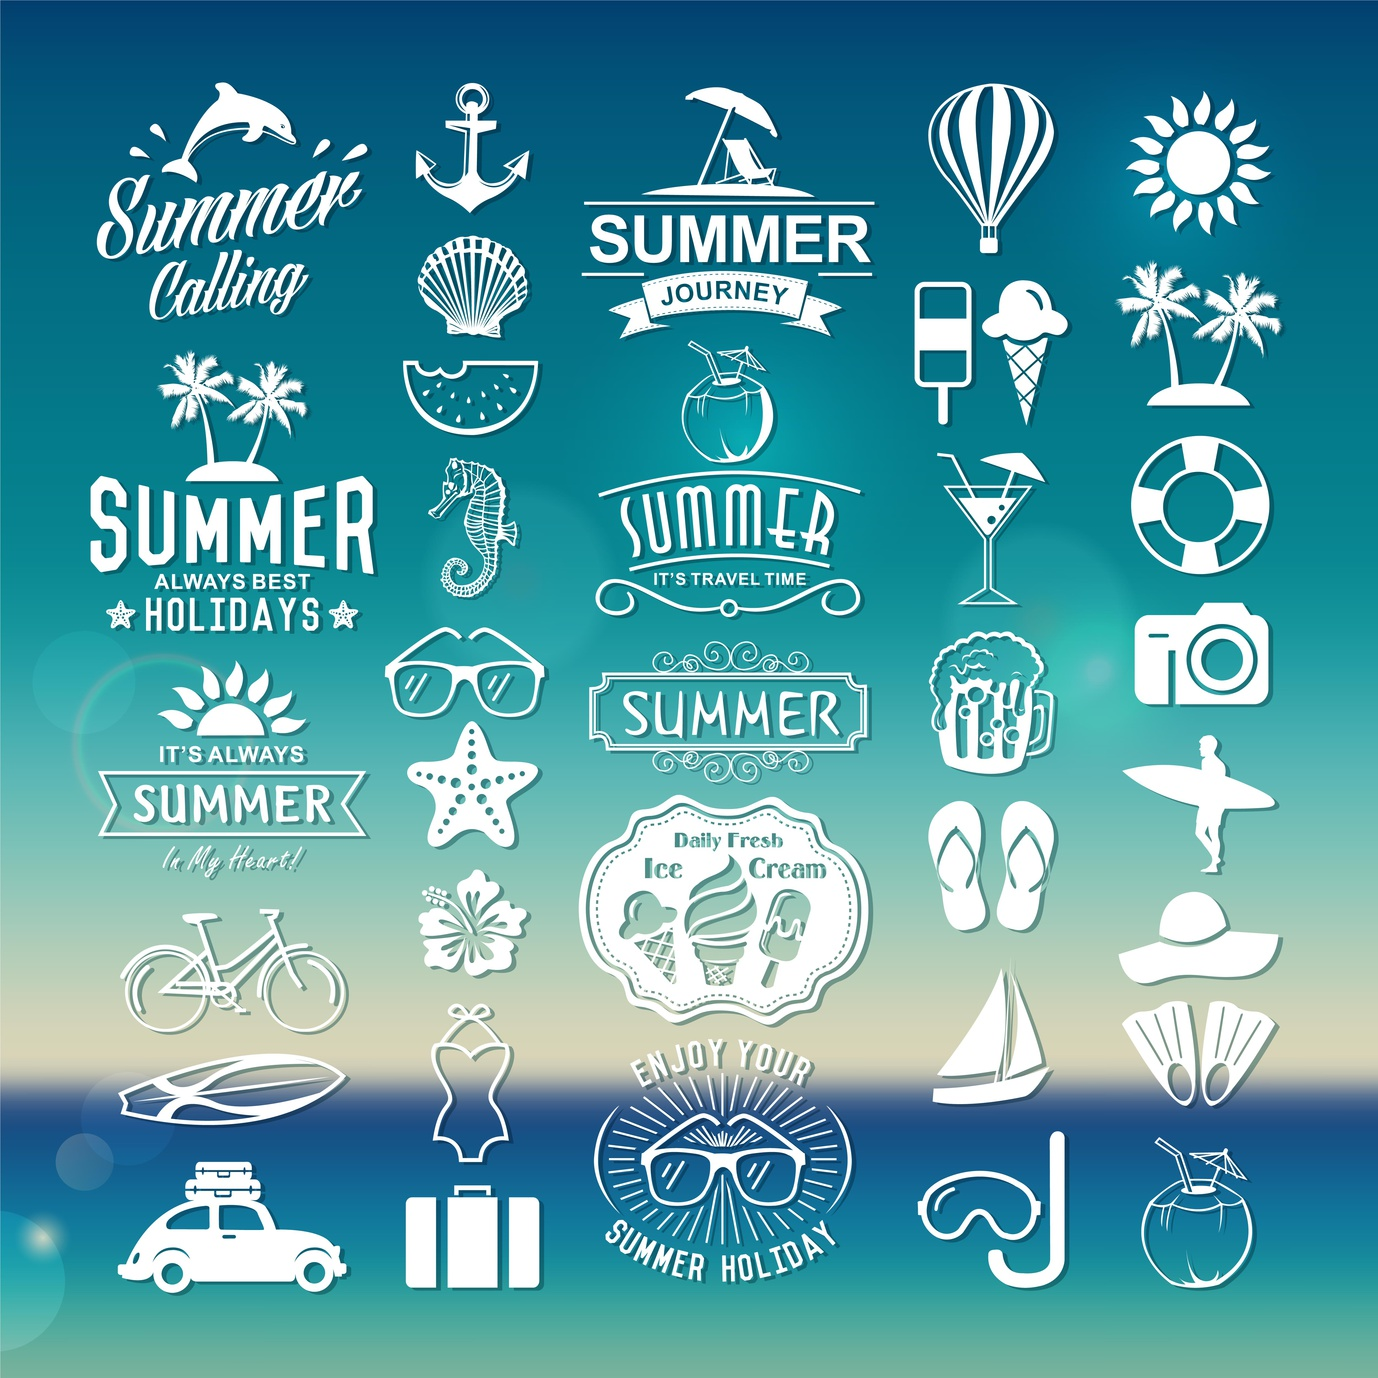 5 Travel Logo Design Ideas That Will Attract Tourists • Online Logo ...